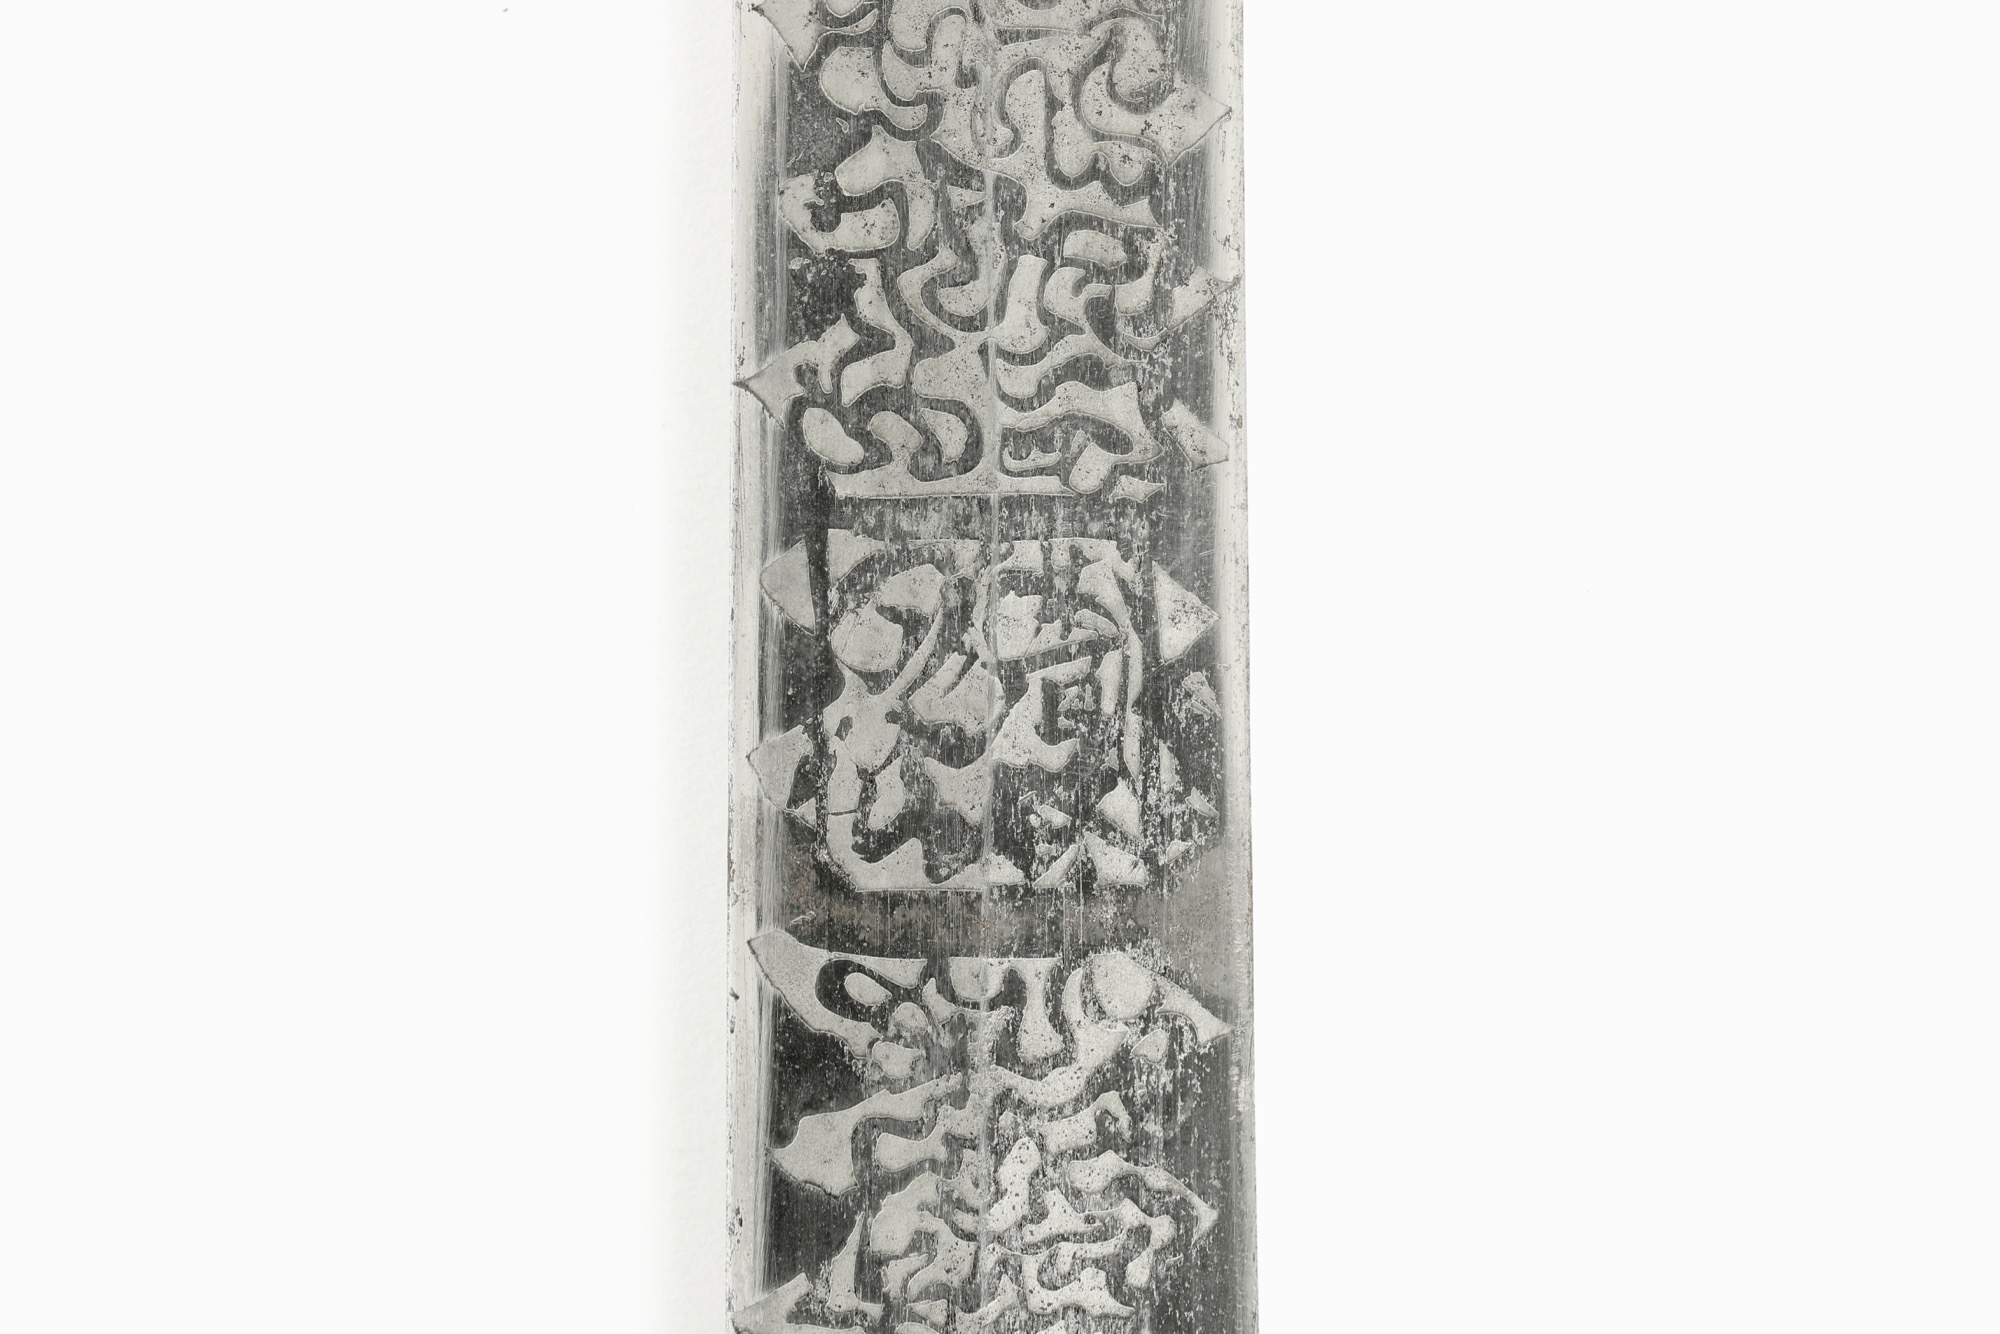 Detail of an antique Chinese jian from the Republican period.